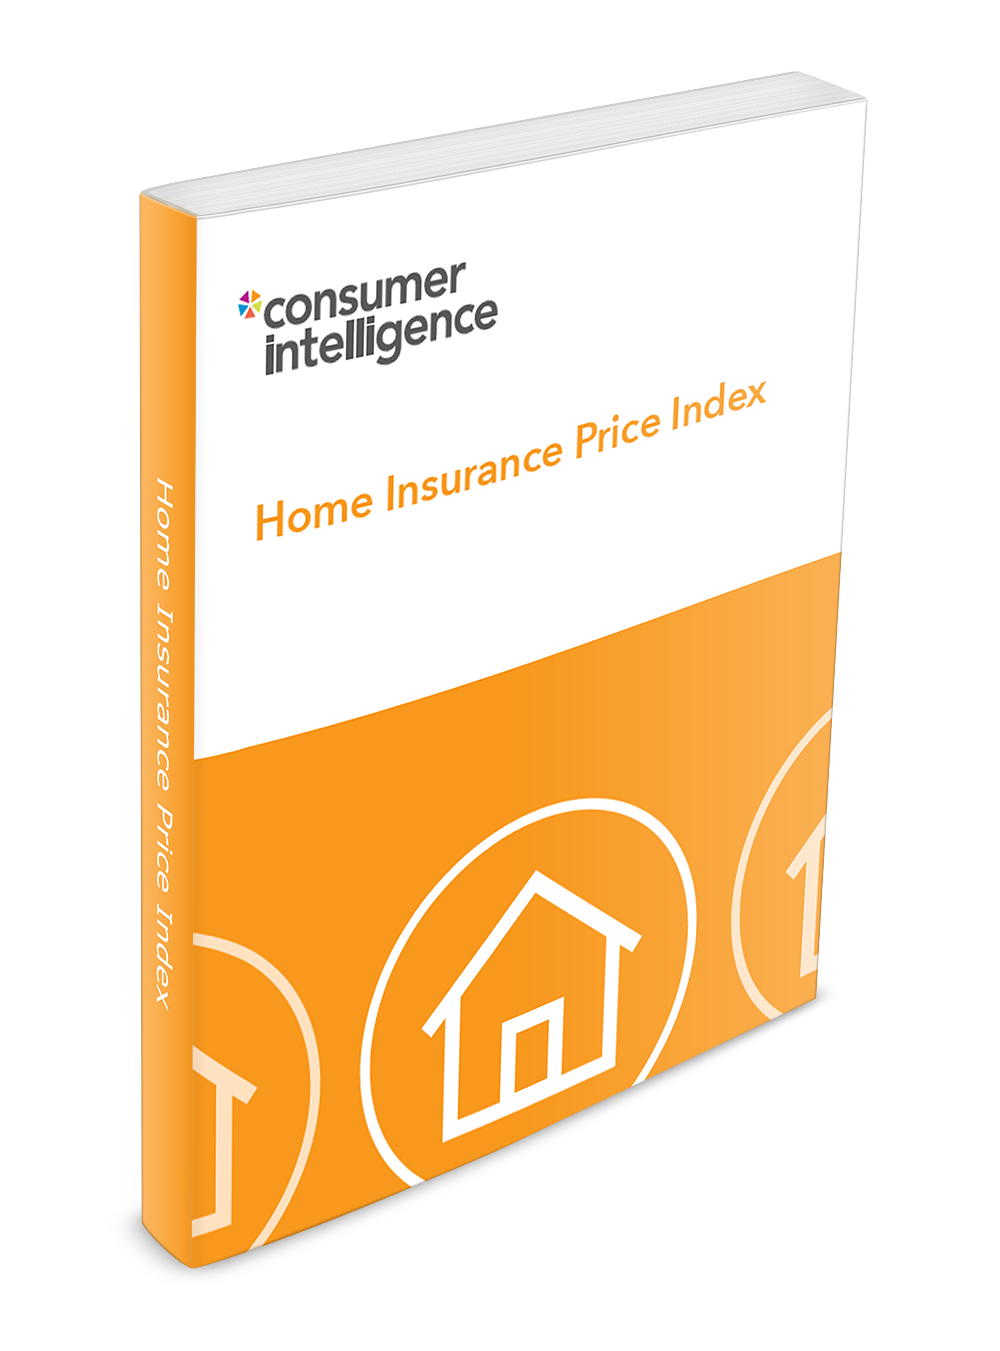 home-insurance-price-index-ebook-3.png